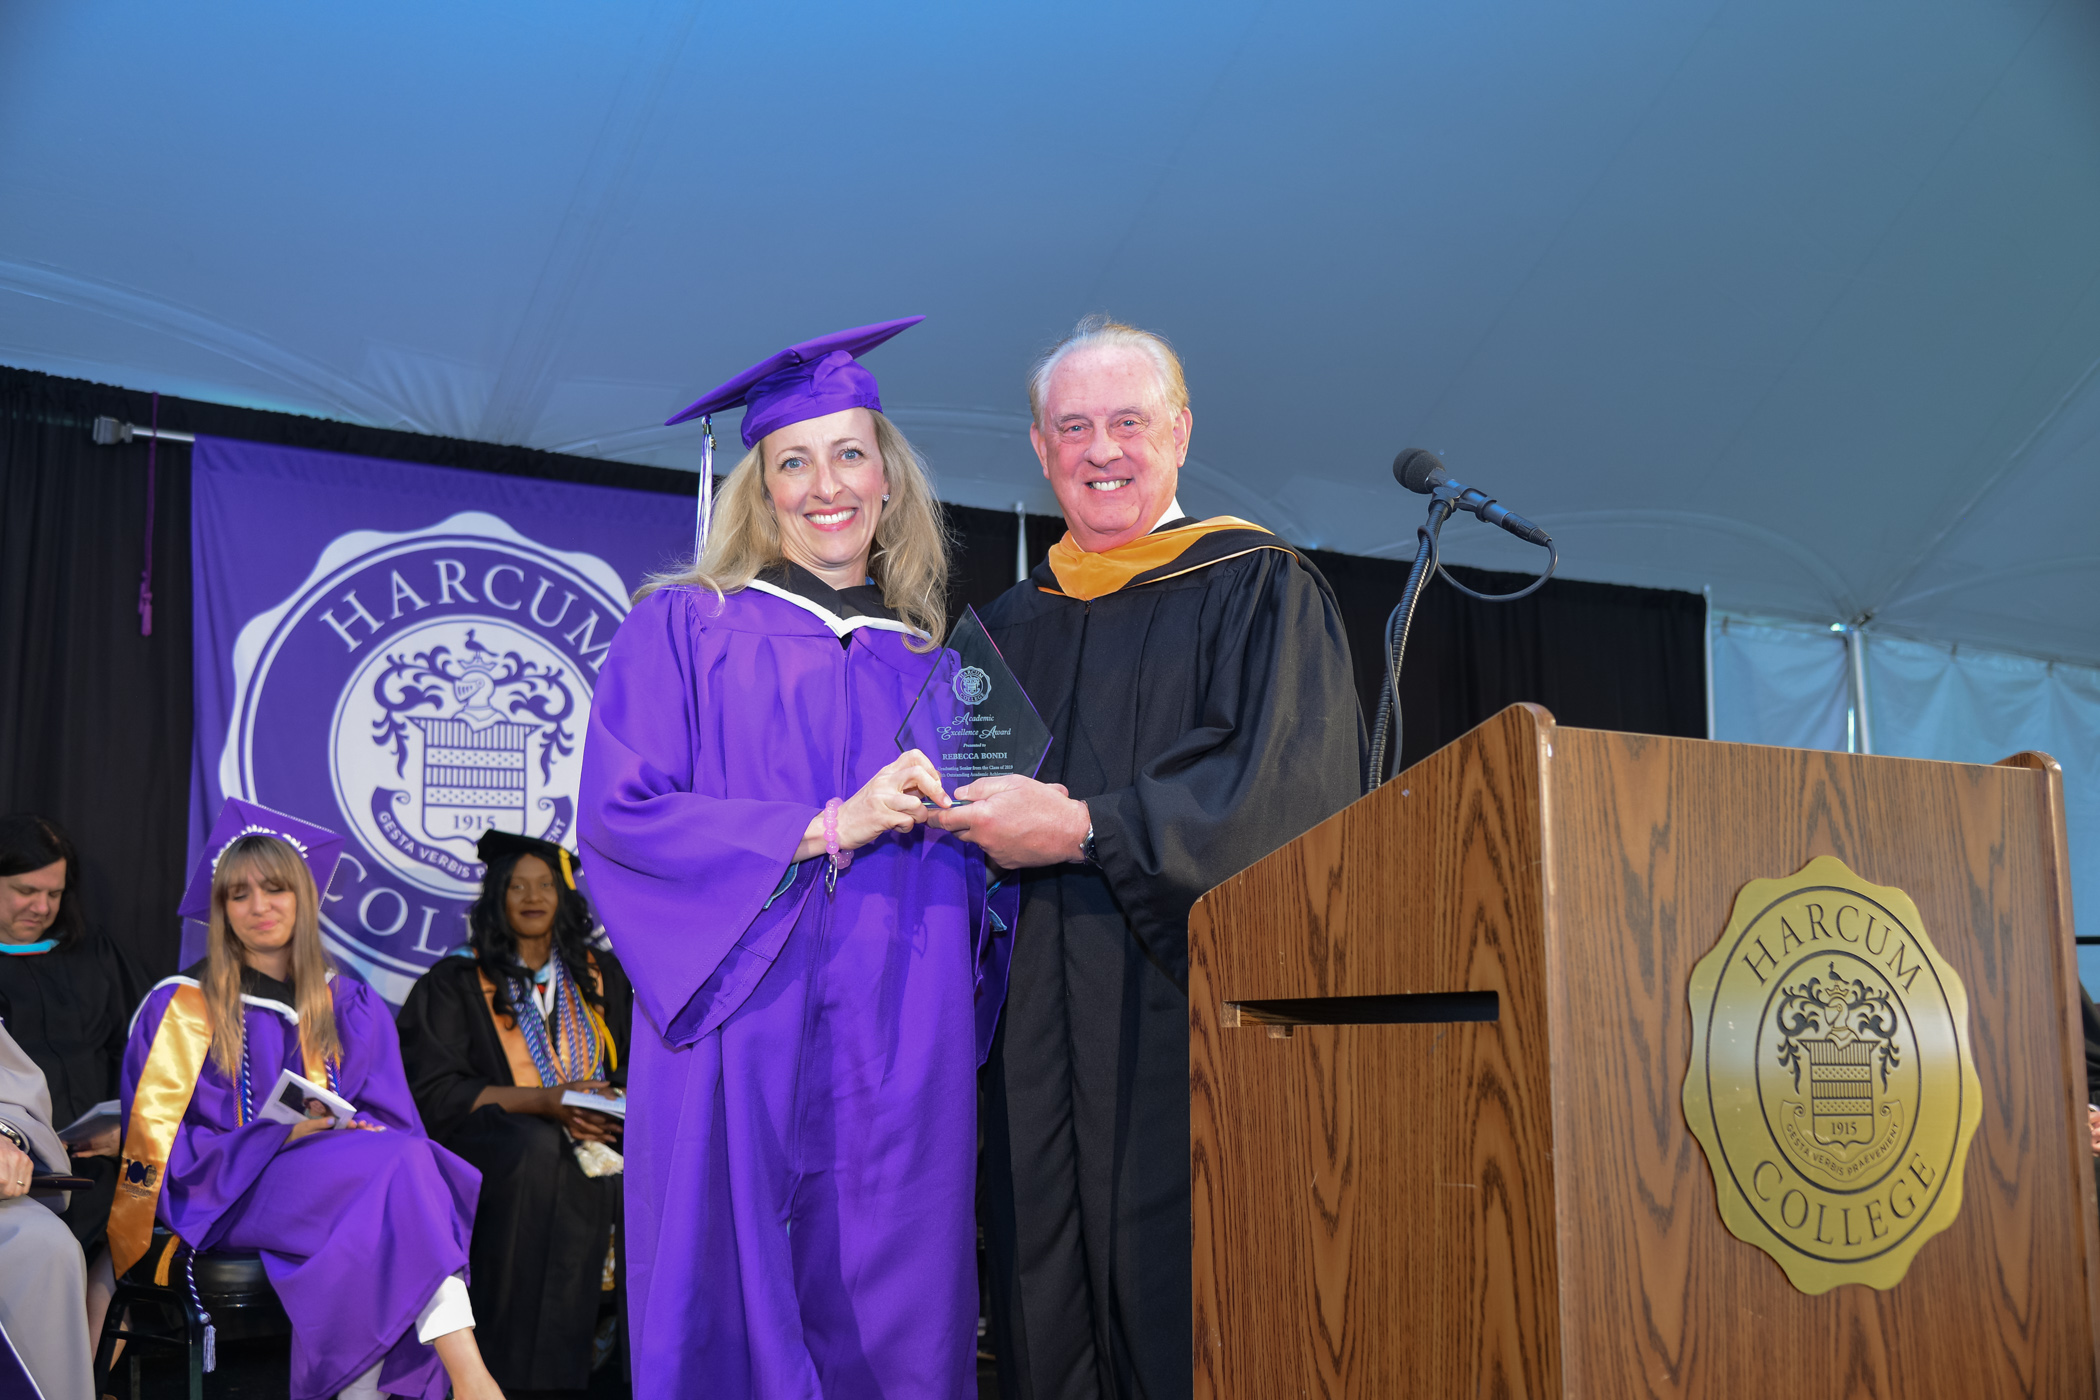 Kennett Square Mother Receives Highest Academic Award from Harcum College